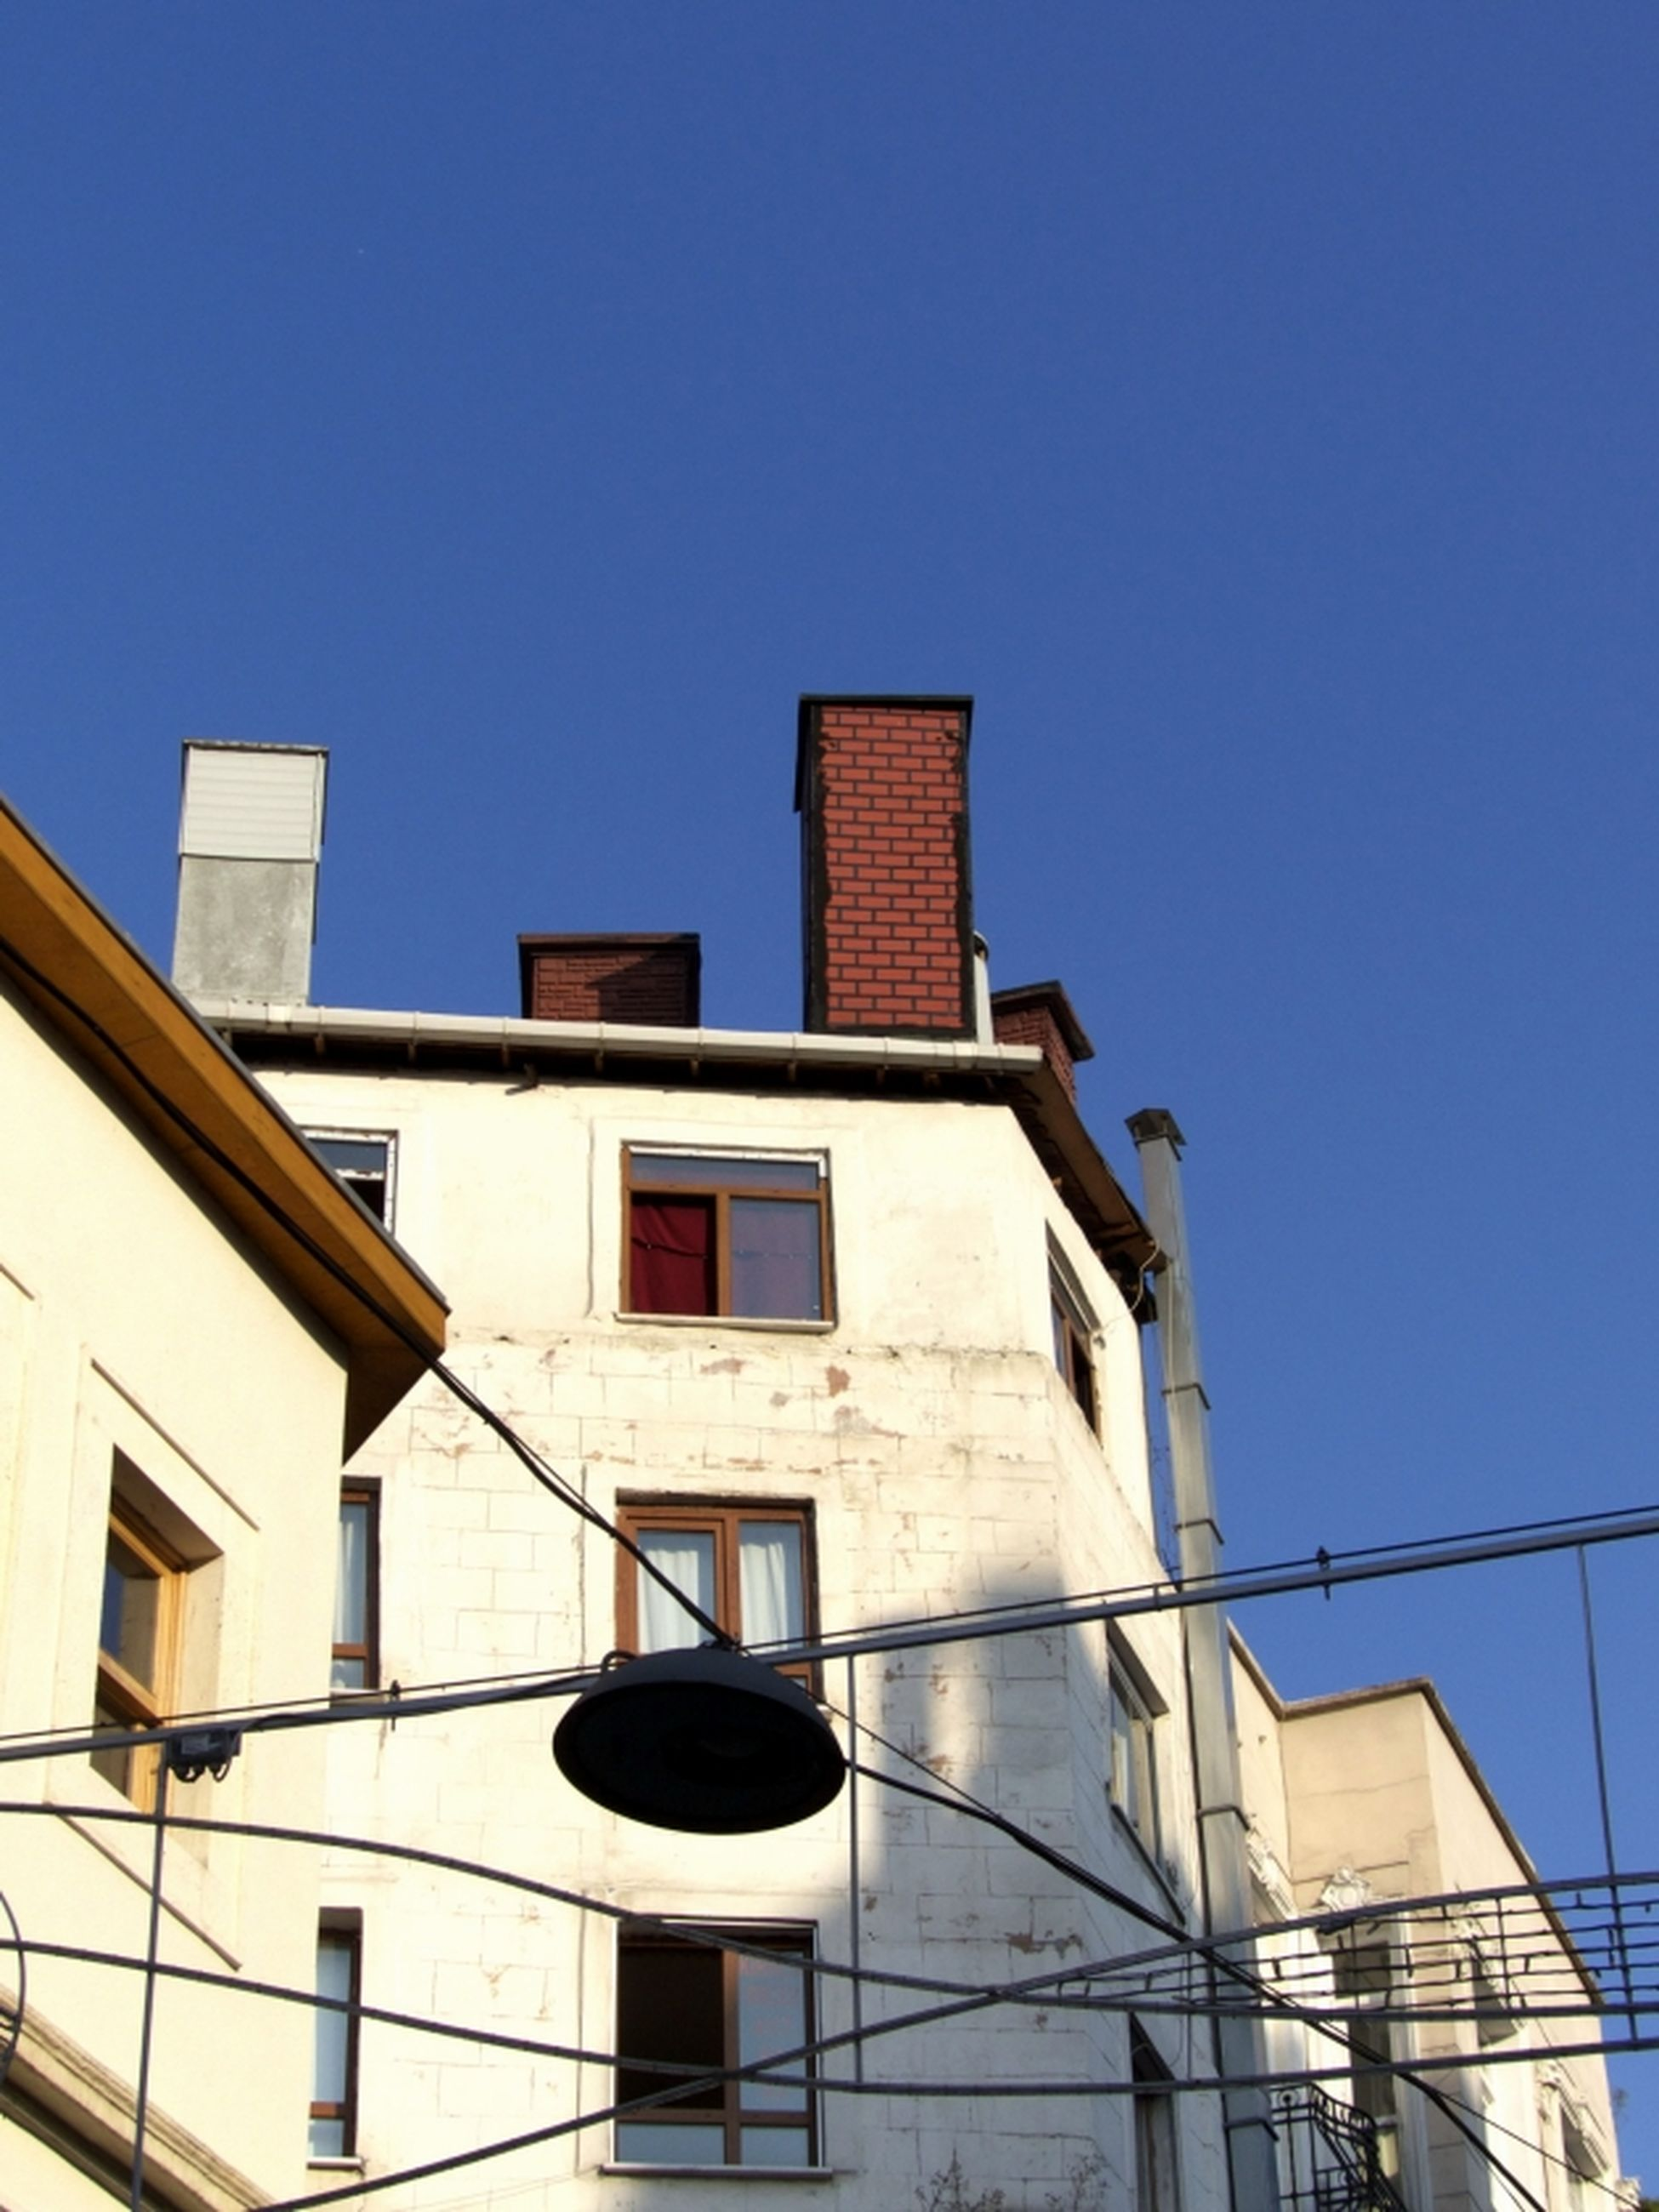 building exterior, architecture, built structure, low angle view, clear sky, no people, blue, day, outdoors, technology, sky